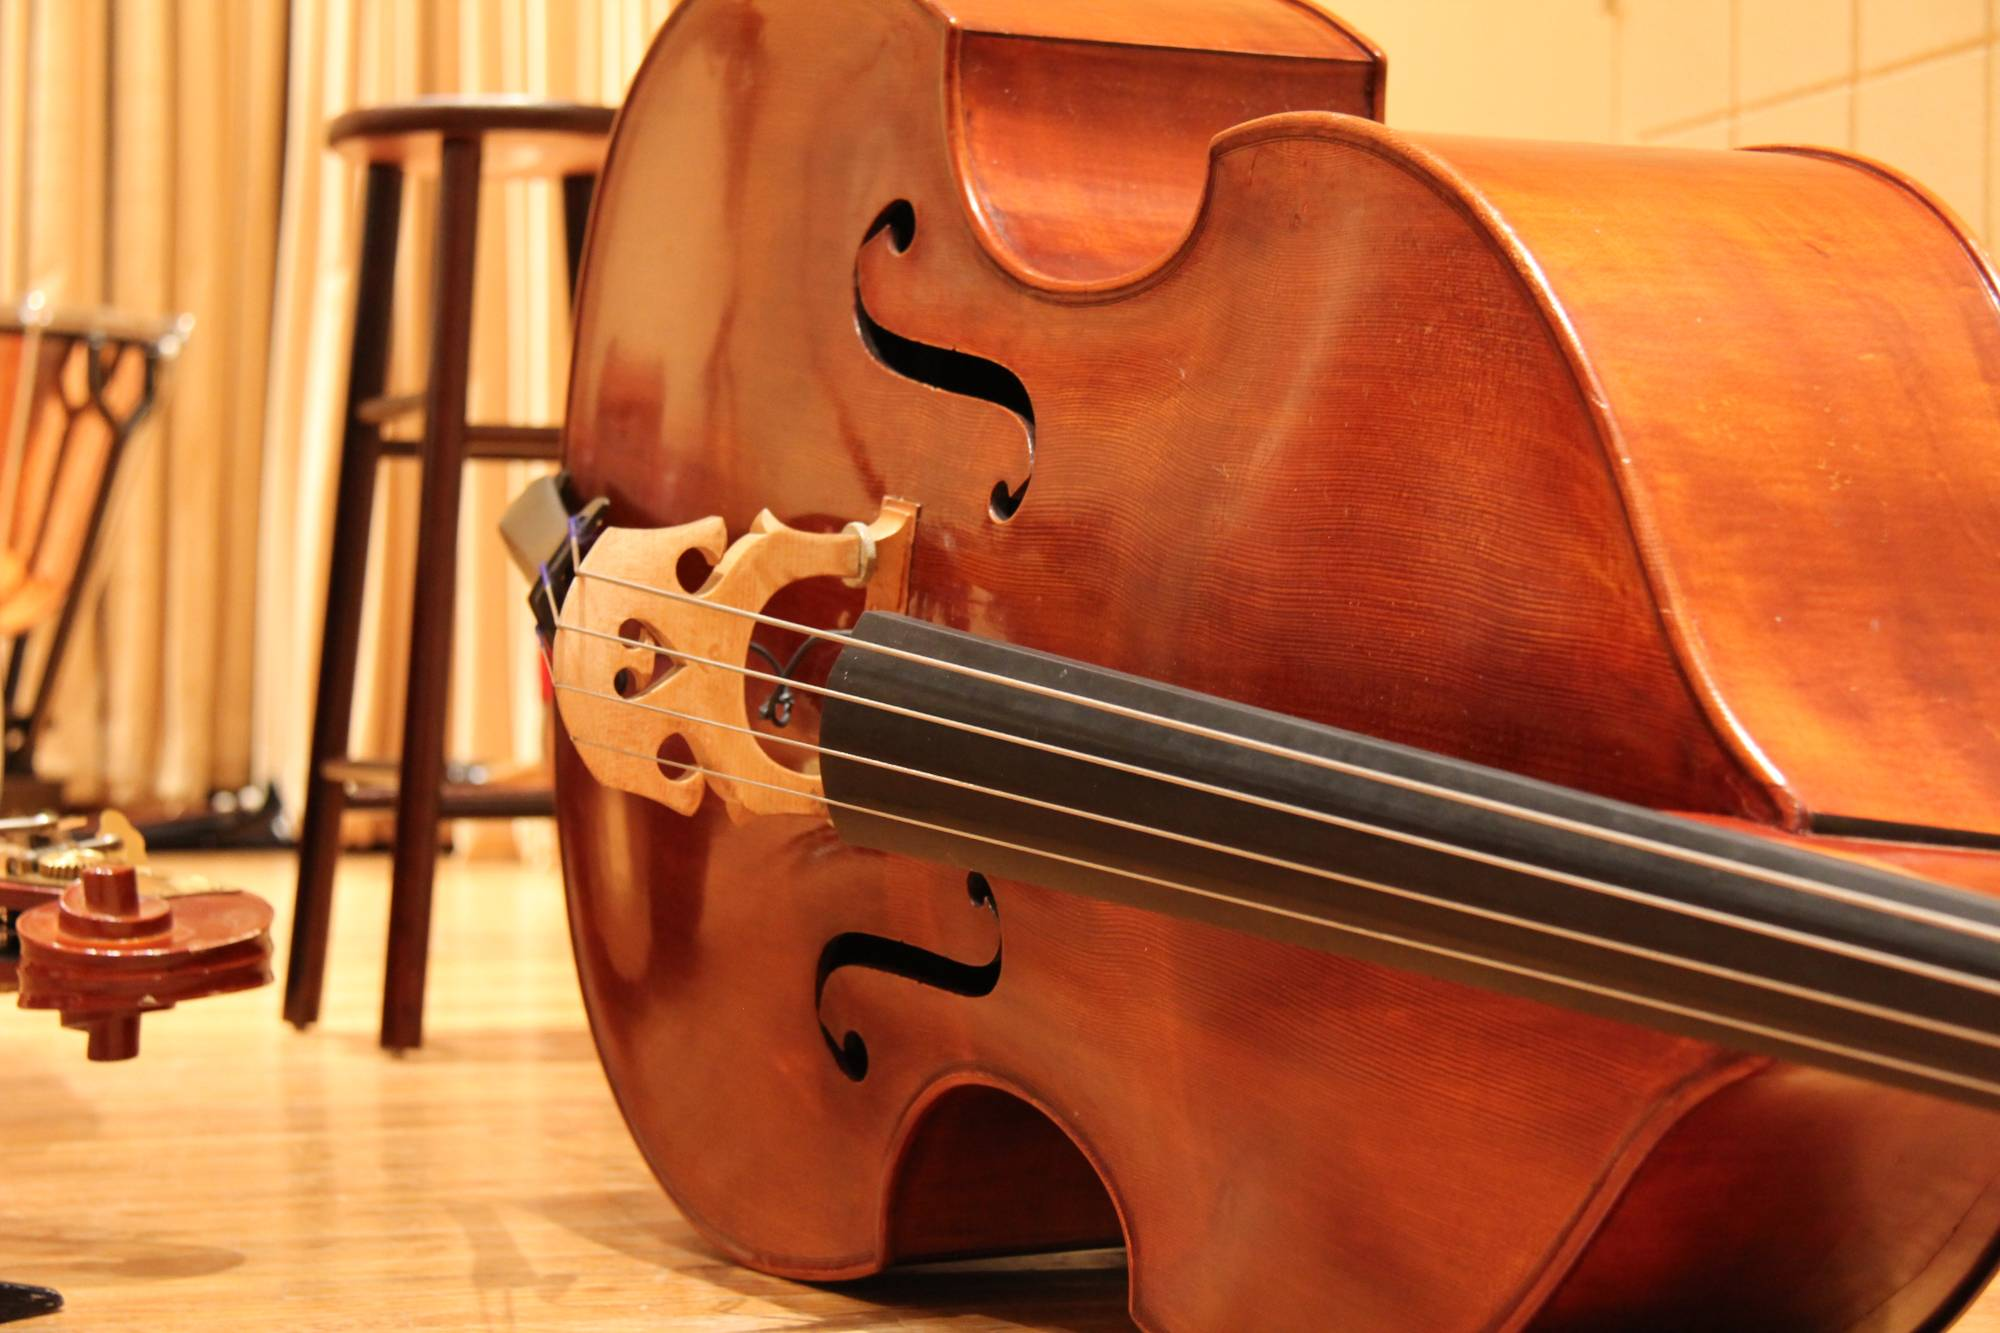 Upright Bass on Terry Concert Hall Stage